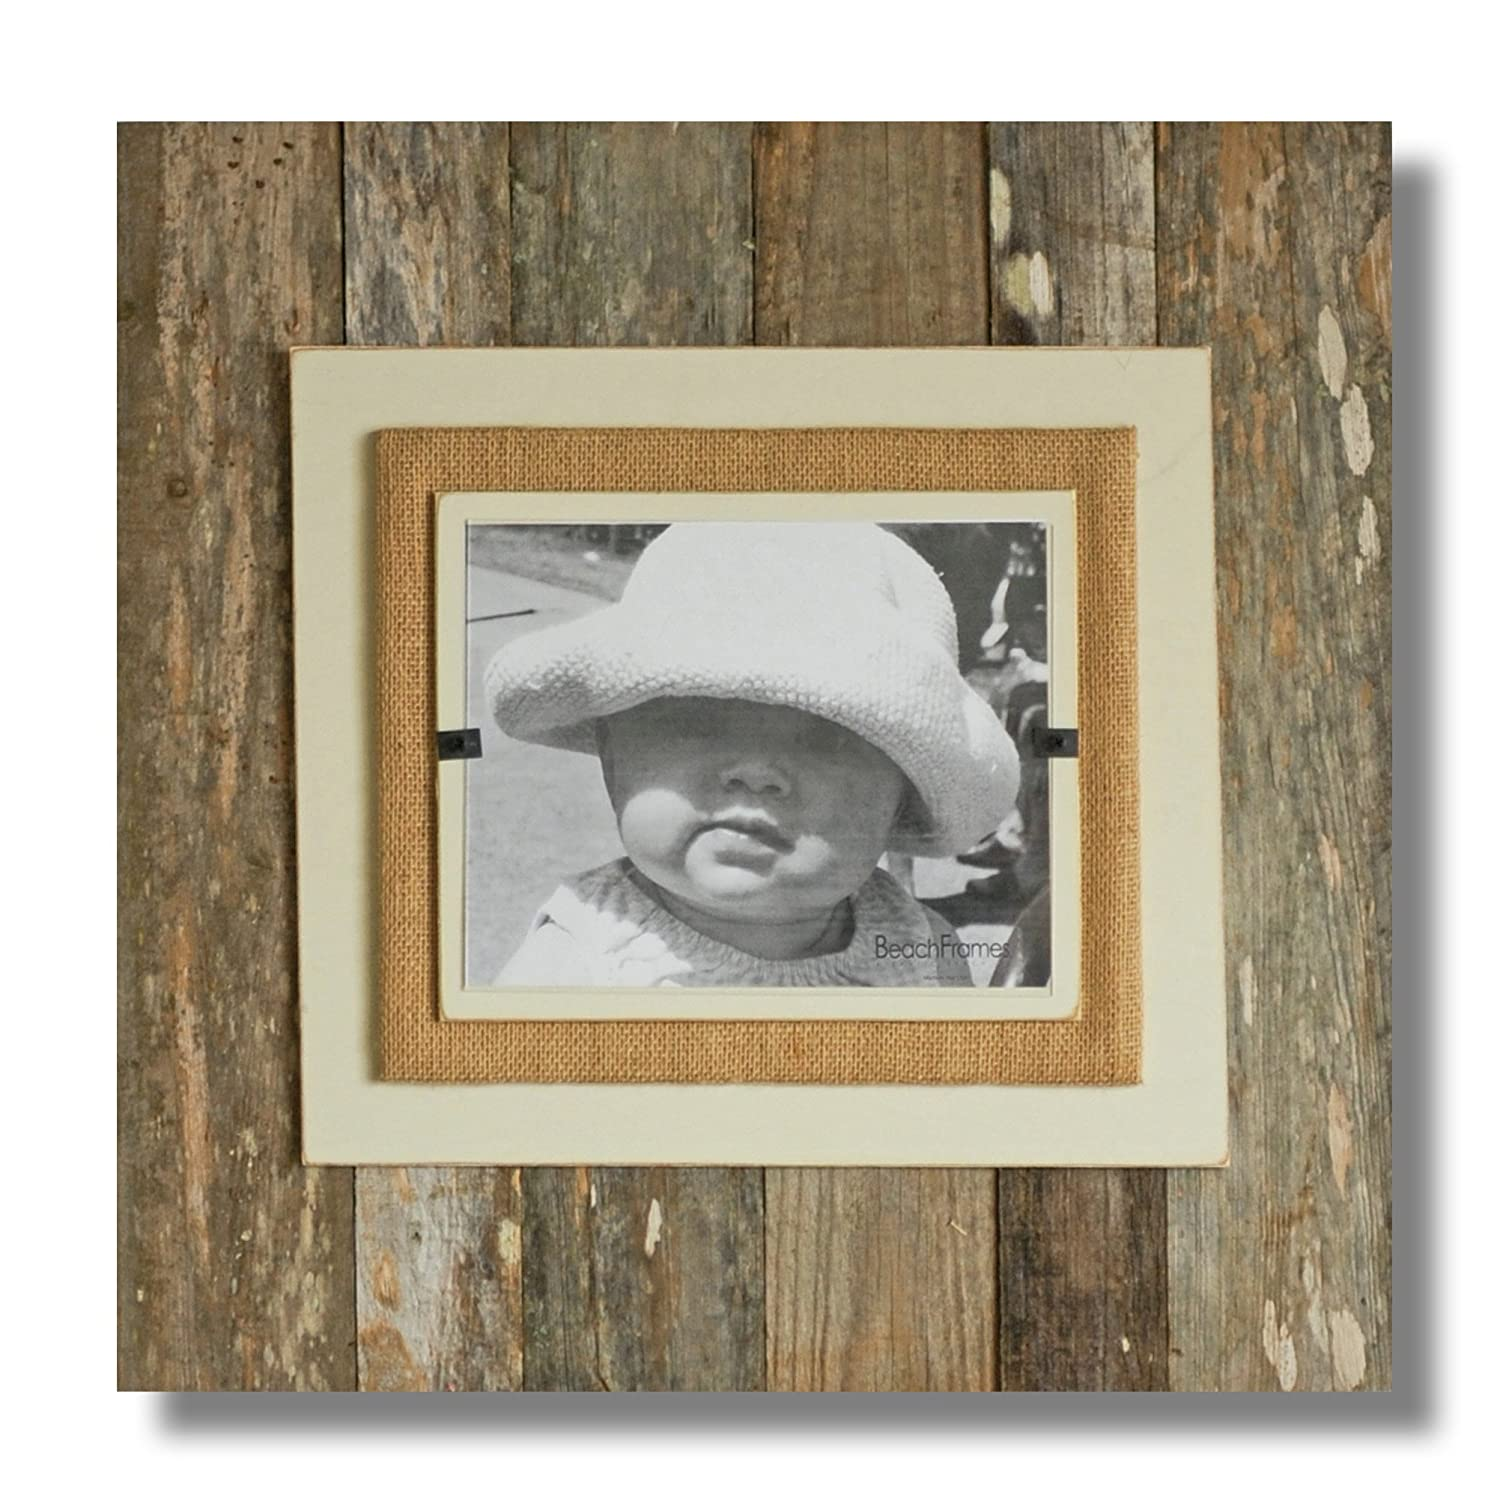 Amazon.com - Beach Frames Rustic Reclaimed Wood 8\